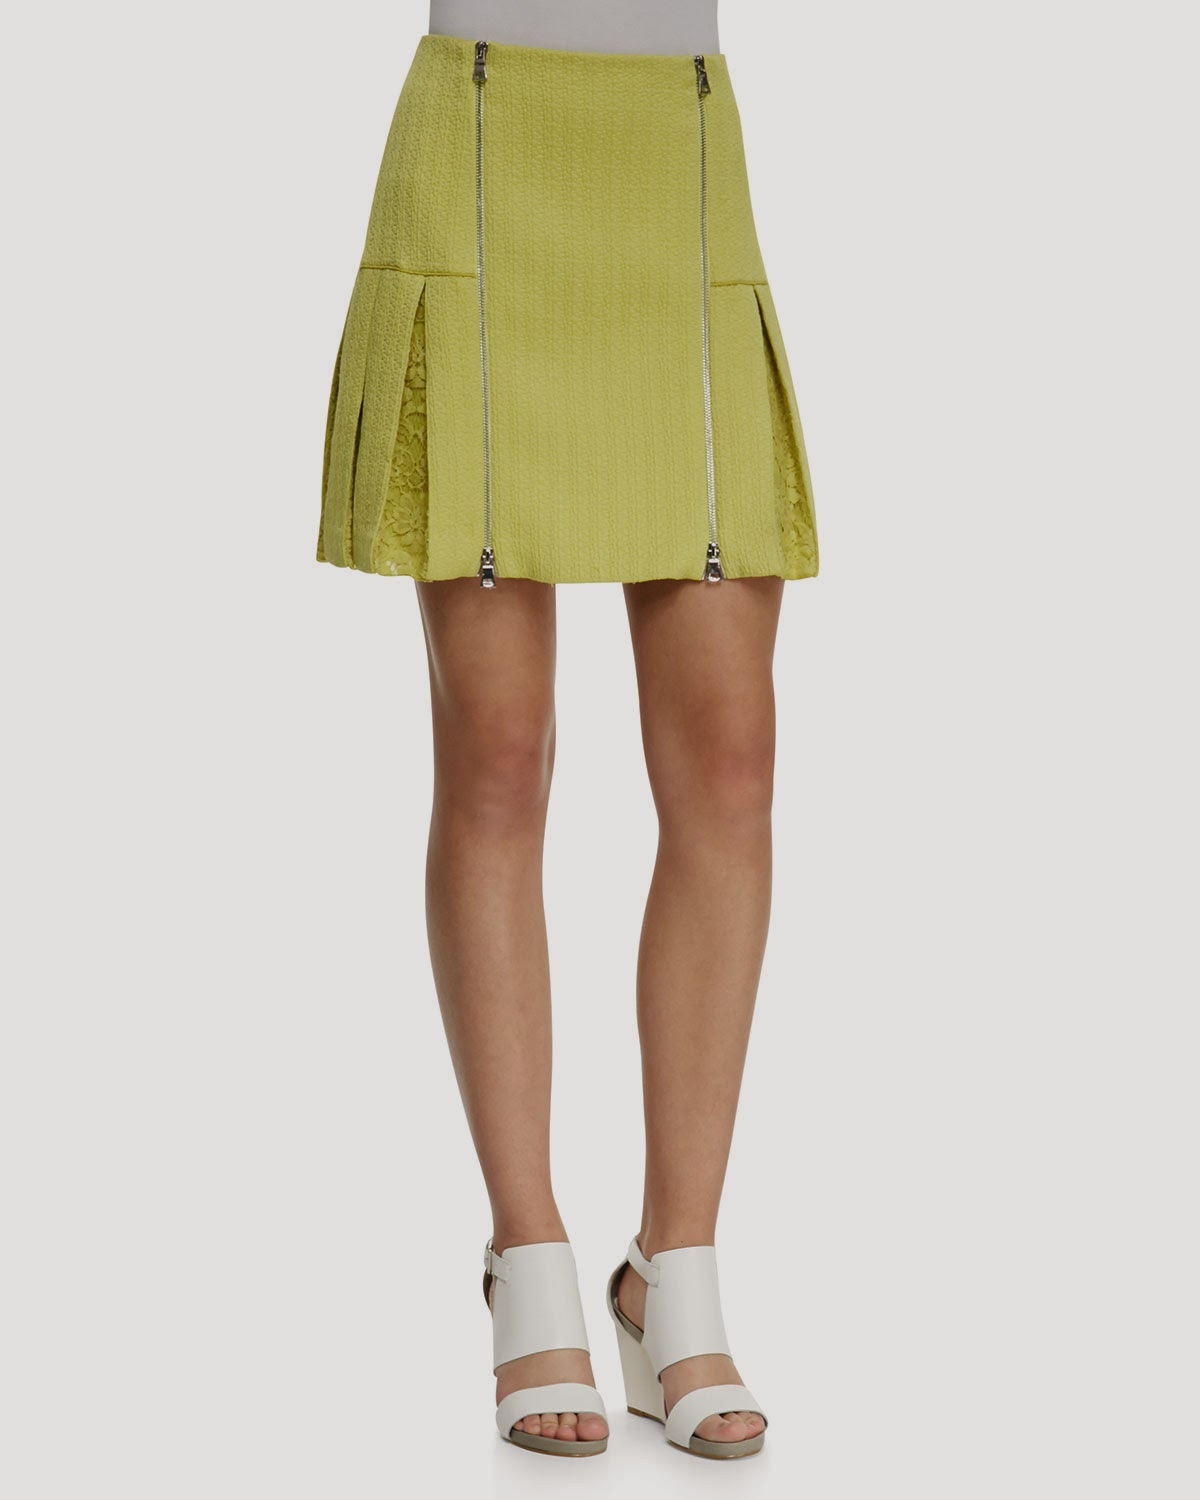 Nieman Marcus lemon drop skirt